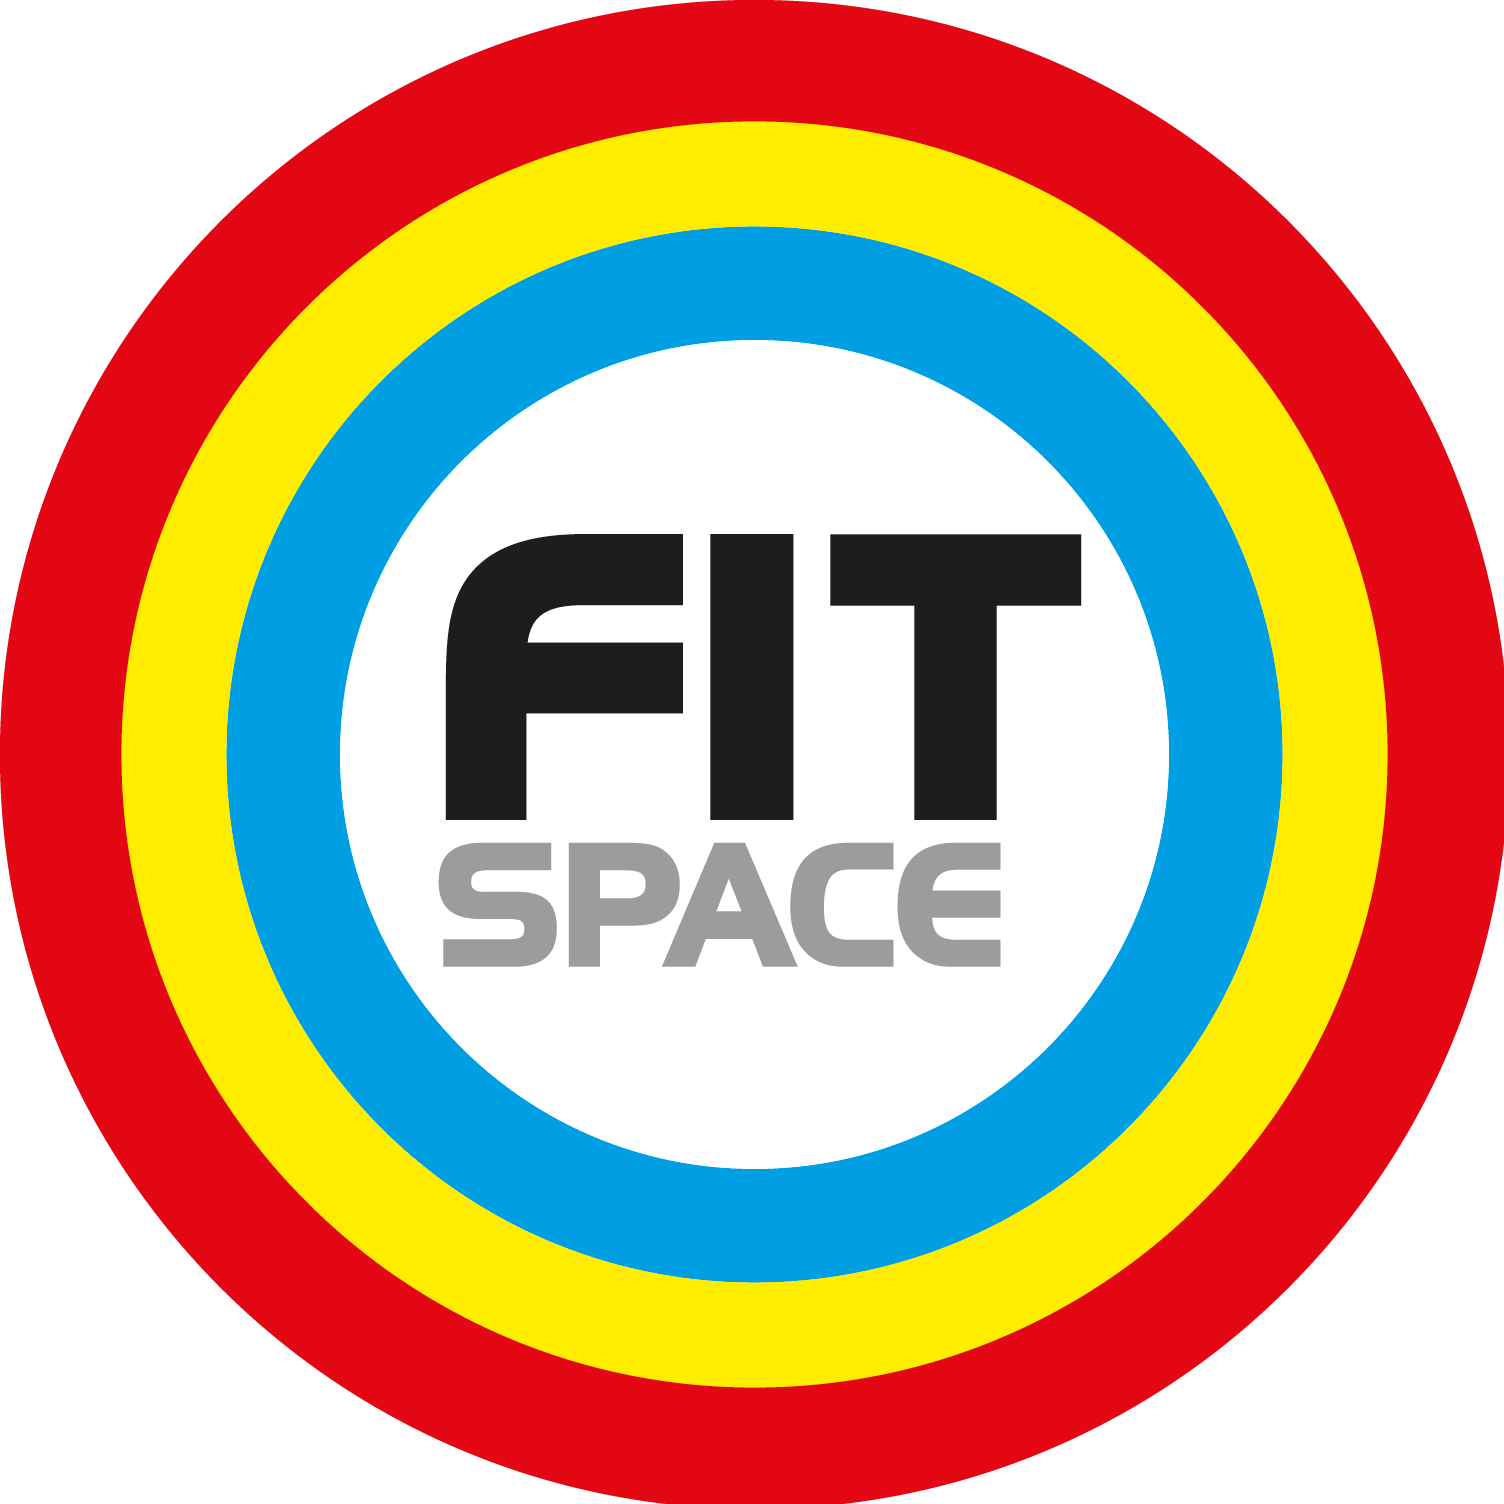 FitSpace